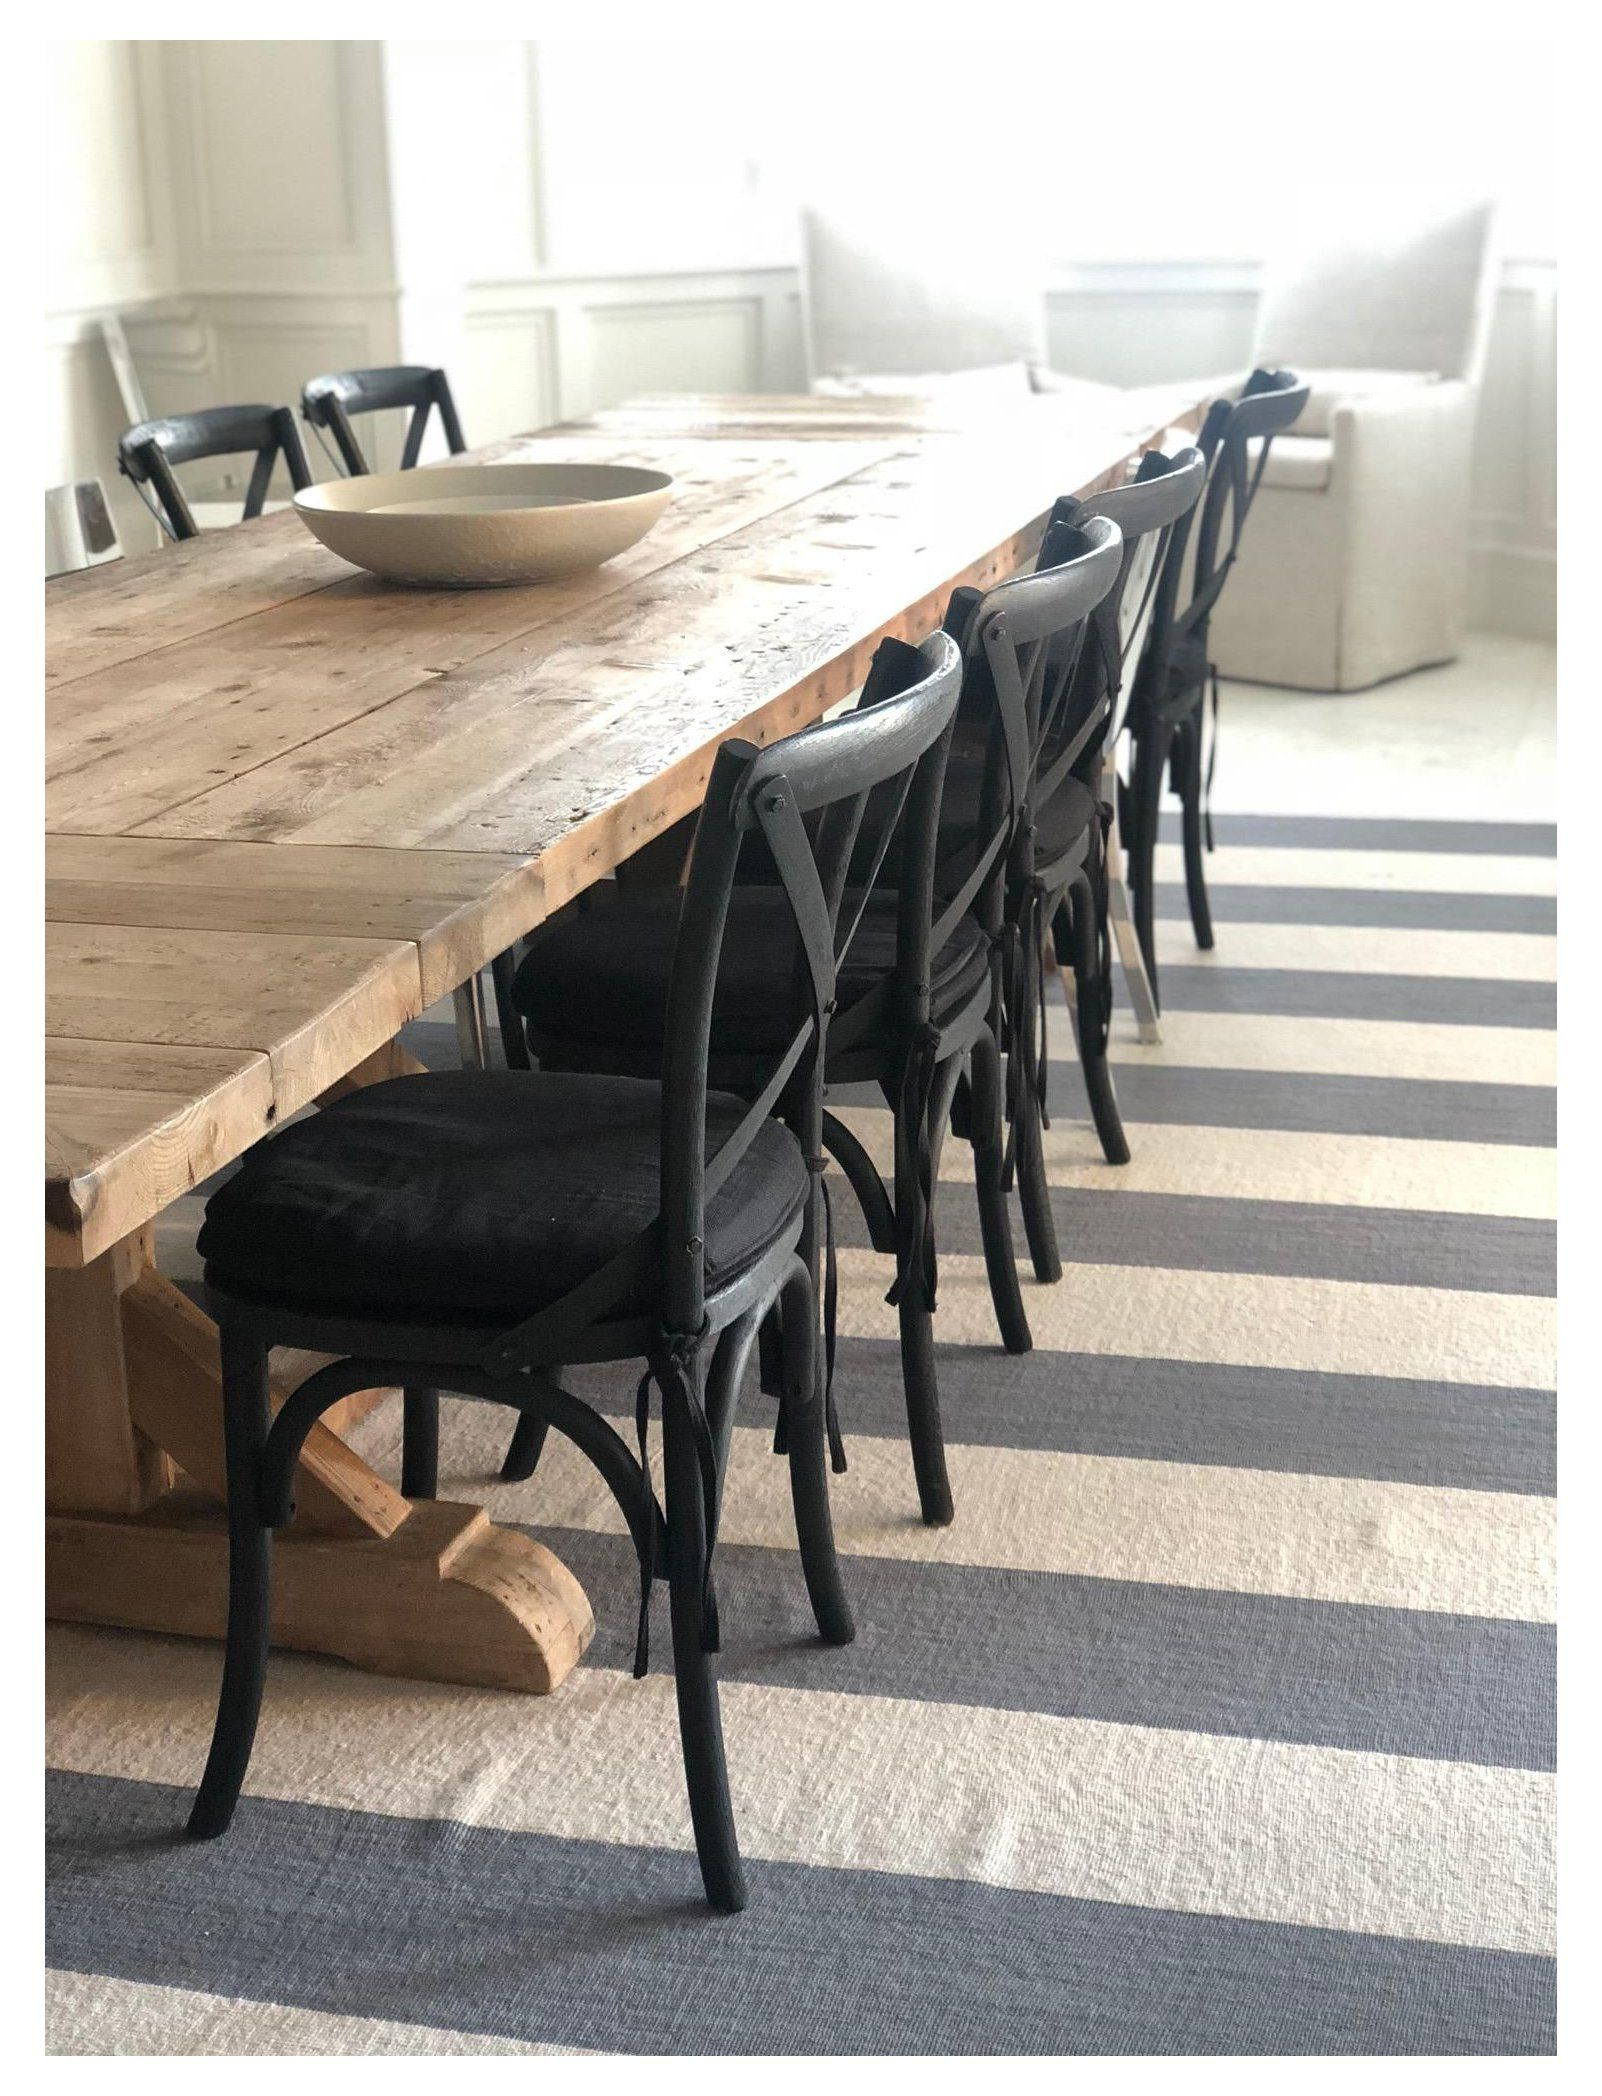 Rh Madeline X Back Black Wood Dining Chair Set Of 8 Black Dining Chair Set Blackdiningchairset Set In 2021 Wood Dining Chairs Black Dining Chairs Dining Chairs